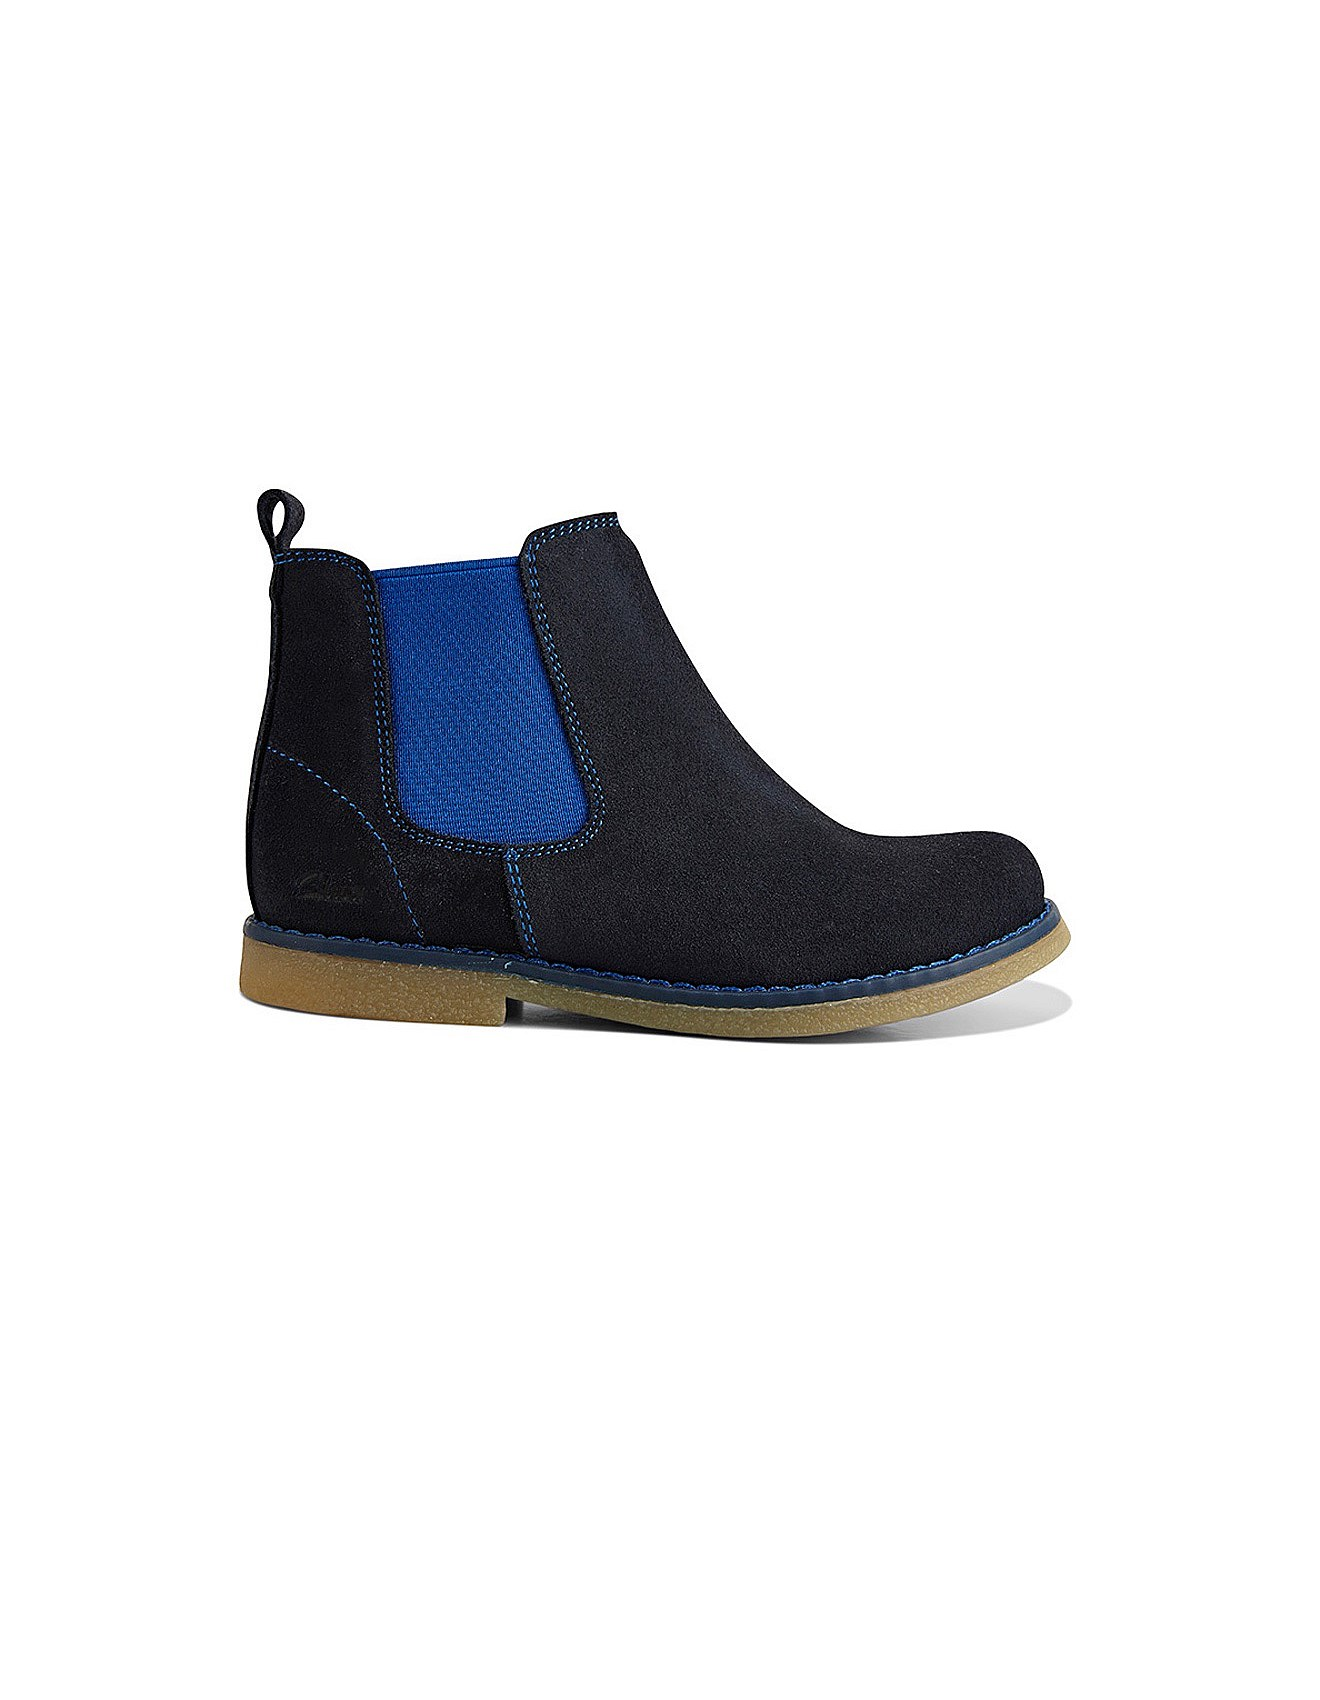 911bb06664950 Kids Clothing Sale | Kids, Baby Clothes & Toys Online | David Jones -  CHELSEA INF